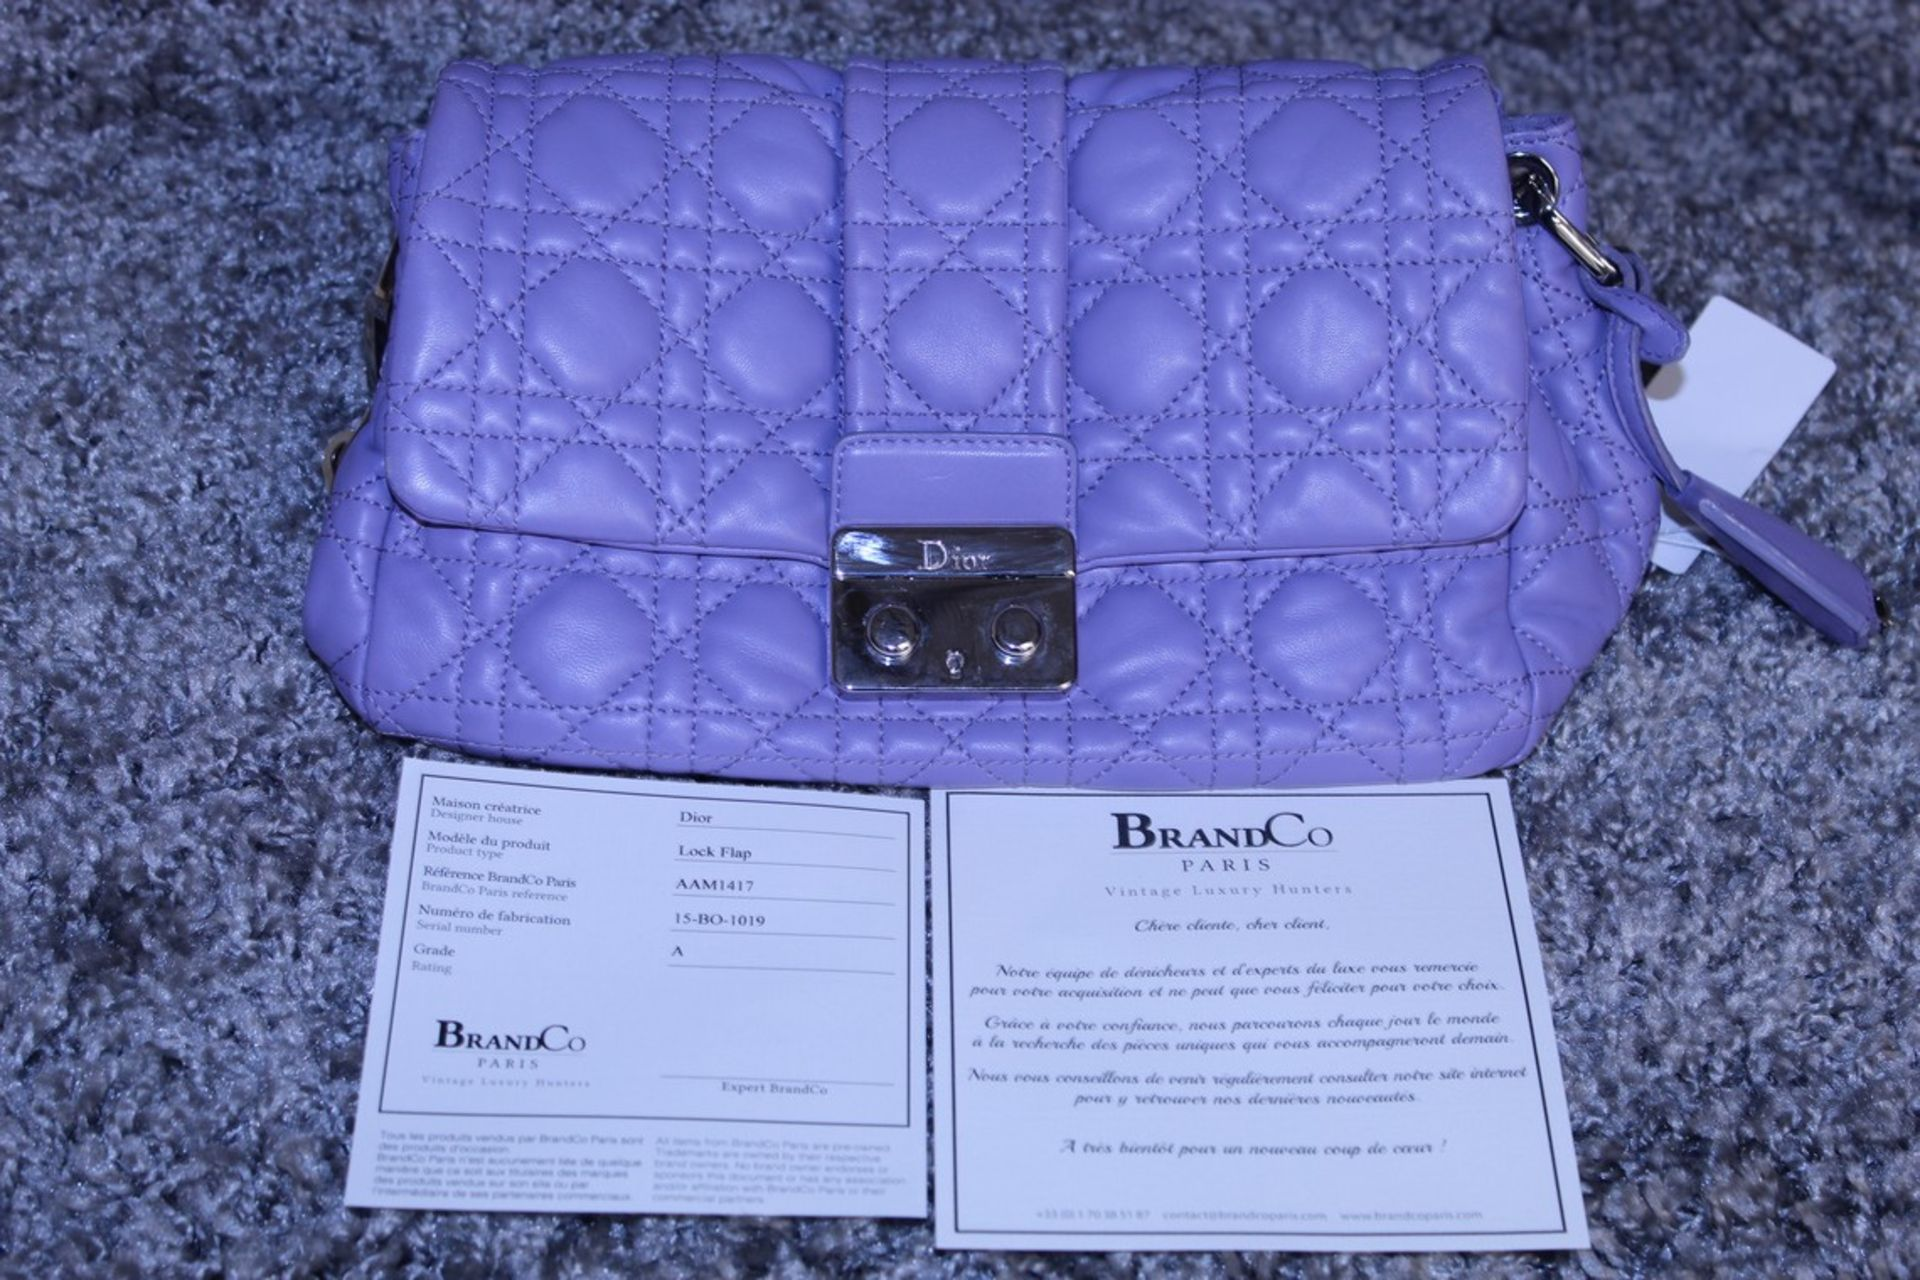 RRP £1,700 Dior Violet Lock Flap Shoulder Bag, Calf Leather, Violet Leather Straps, 24X17X12Cm ( - Image 3 of 3